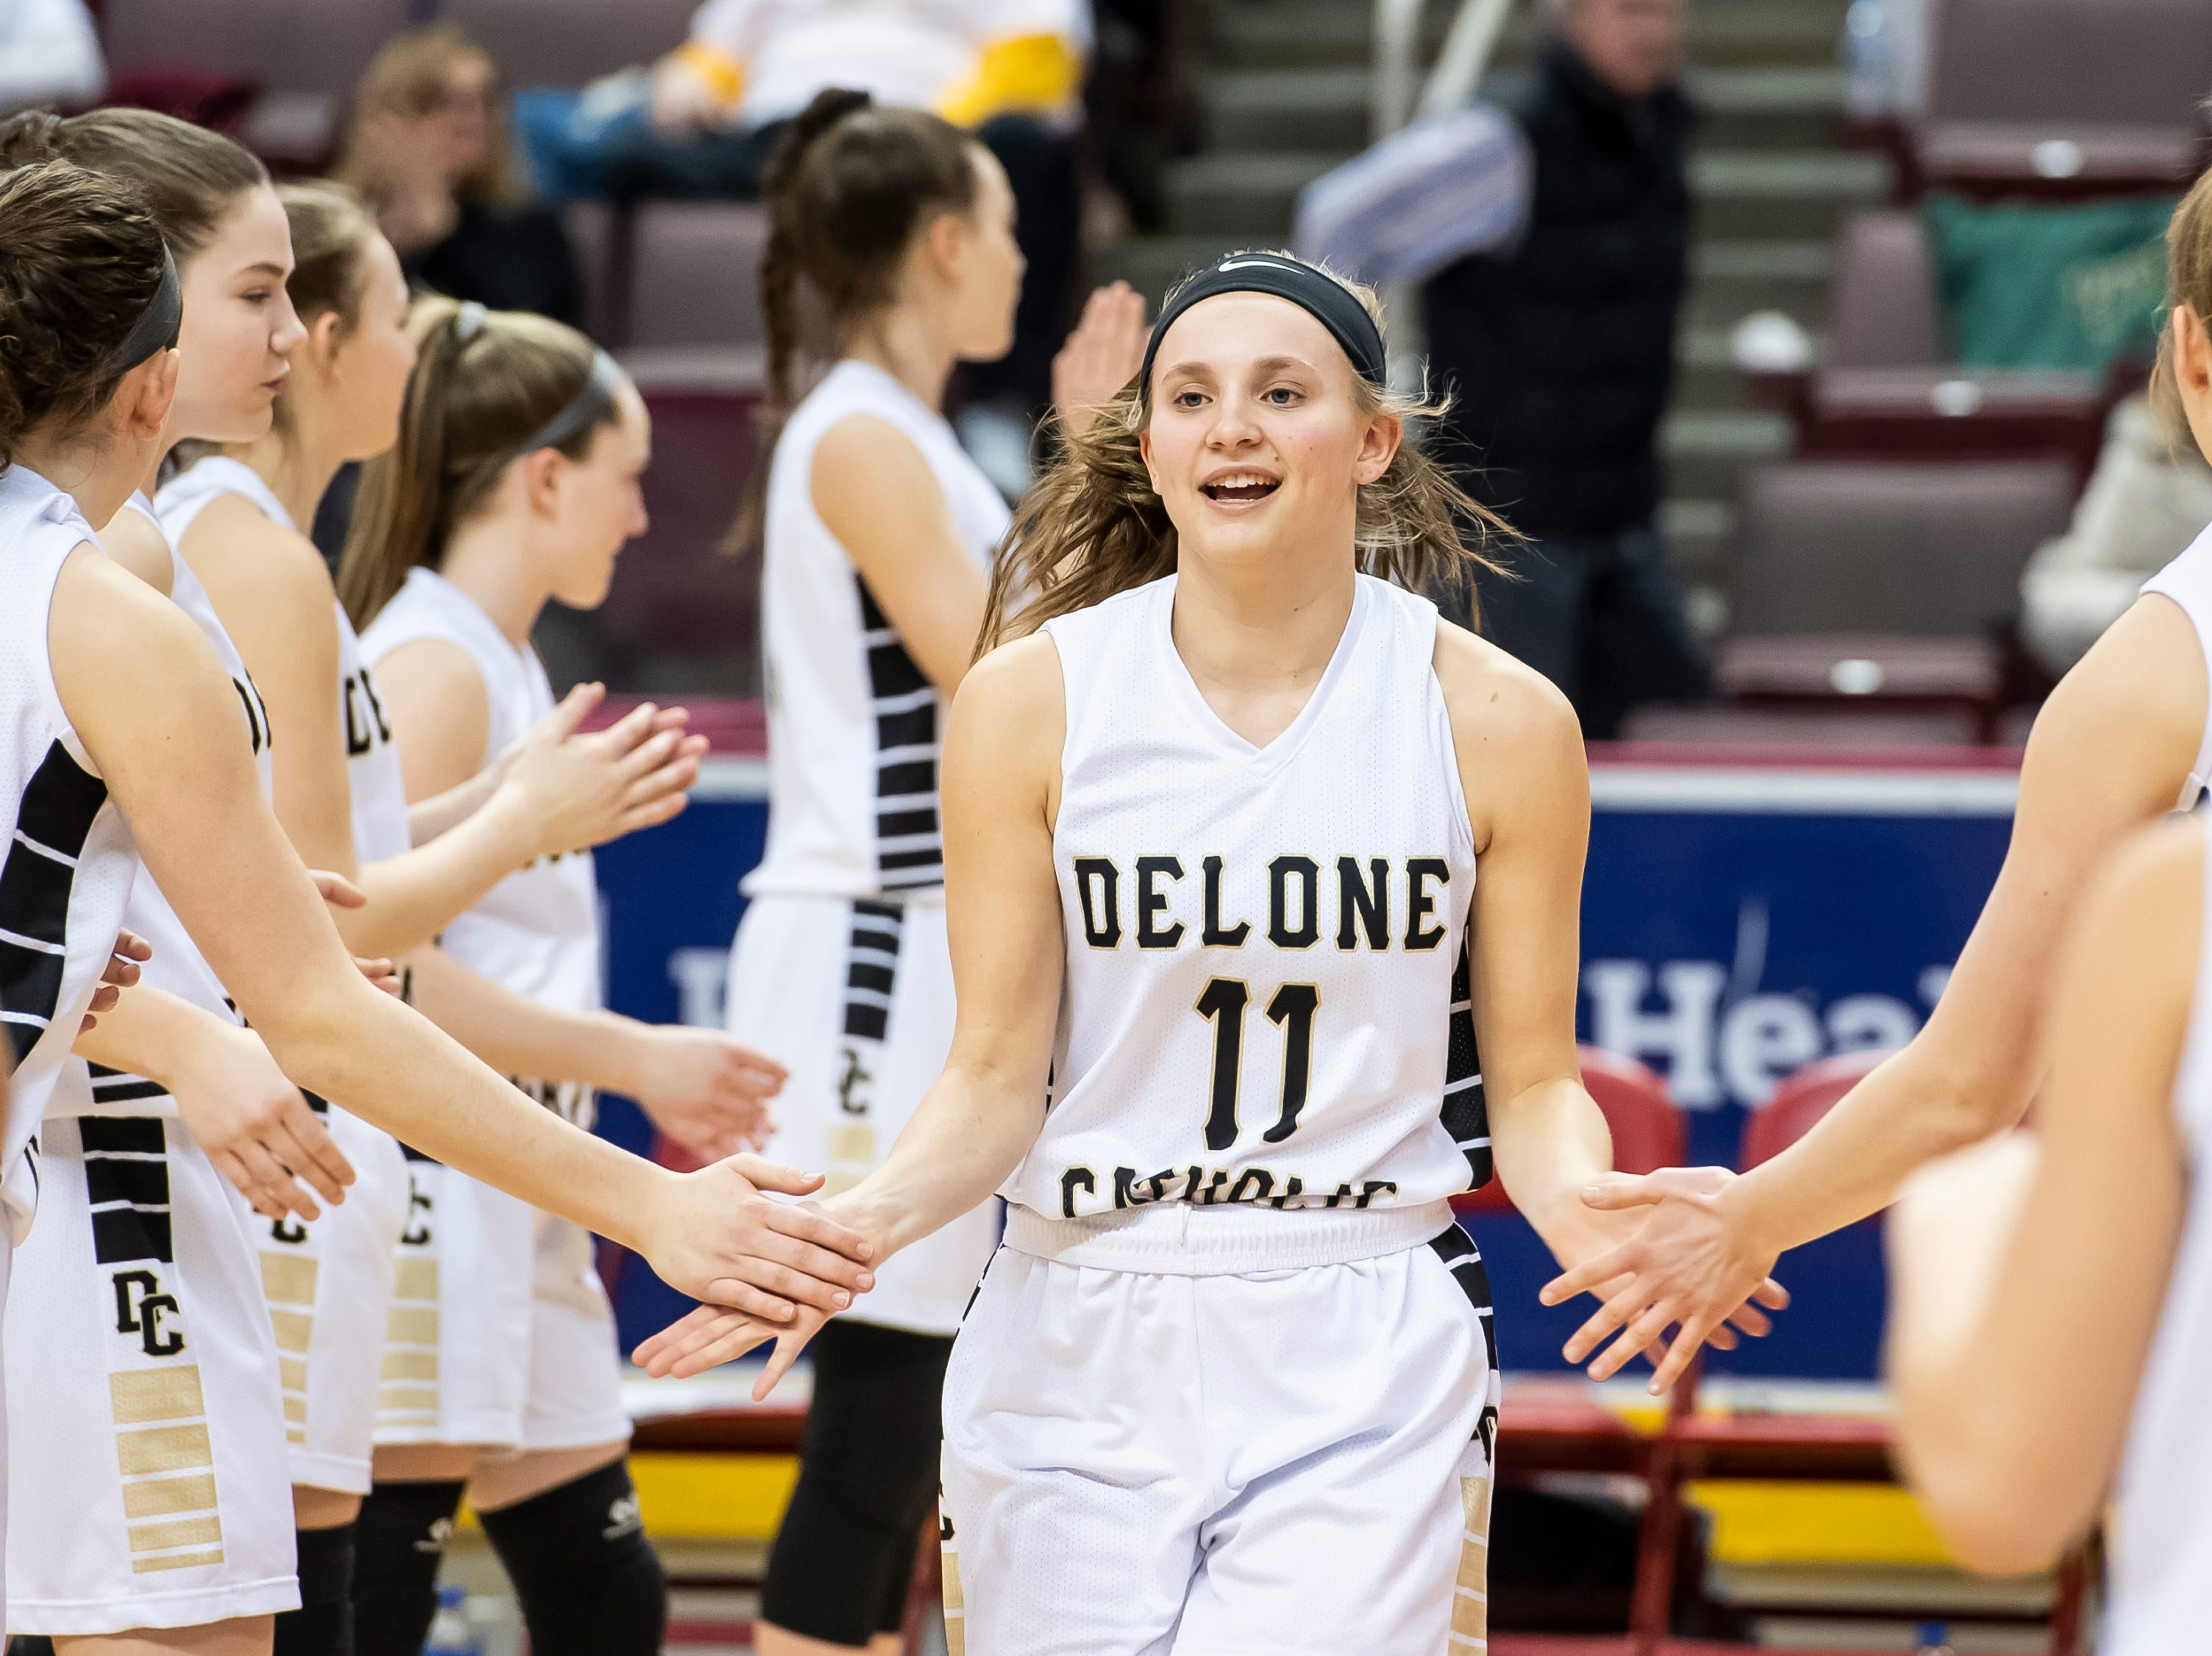 Delone Catholic's Riley Vingsen is introduced during the starting lineups before the District 3 3A girls championship game against Trinity at the Giant Center in Hershey Wednesday, Feb. 27, 2019. The Squirettes fell 44-33.